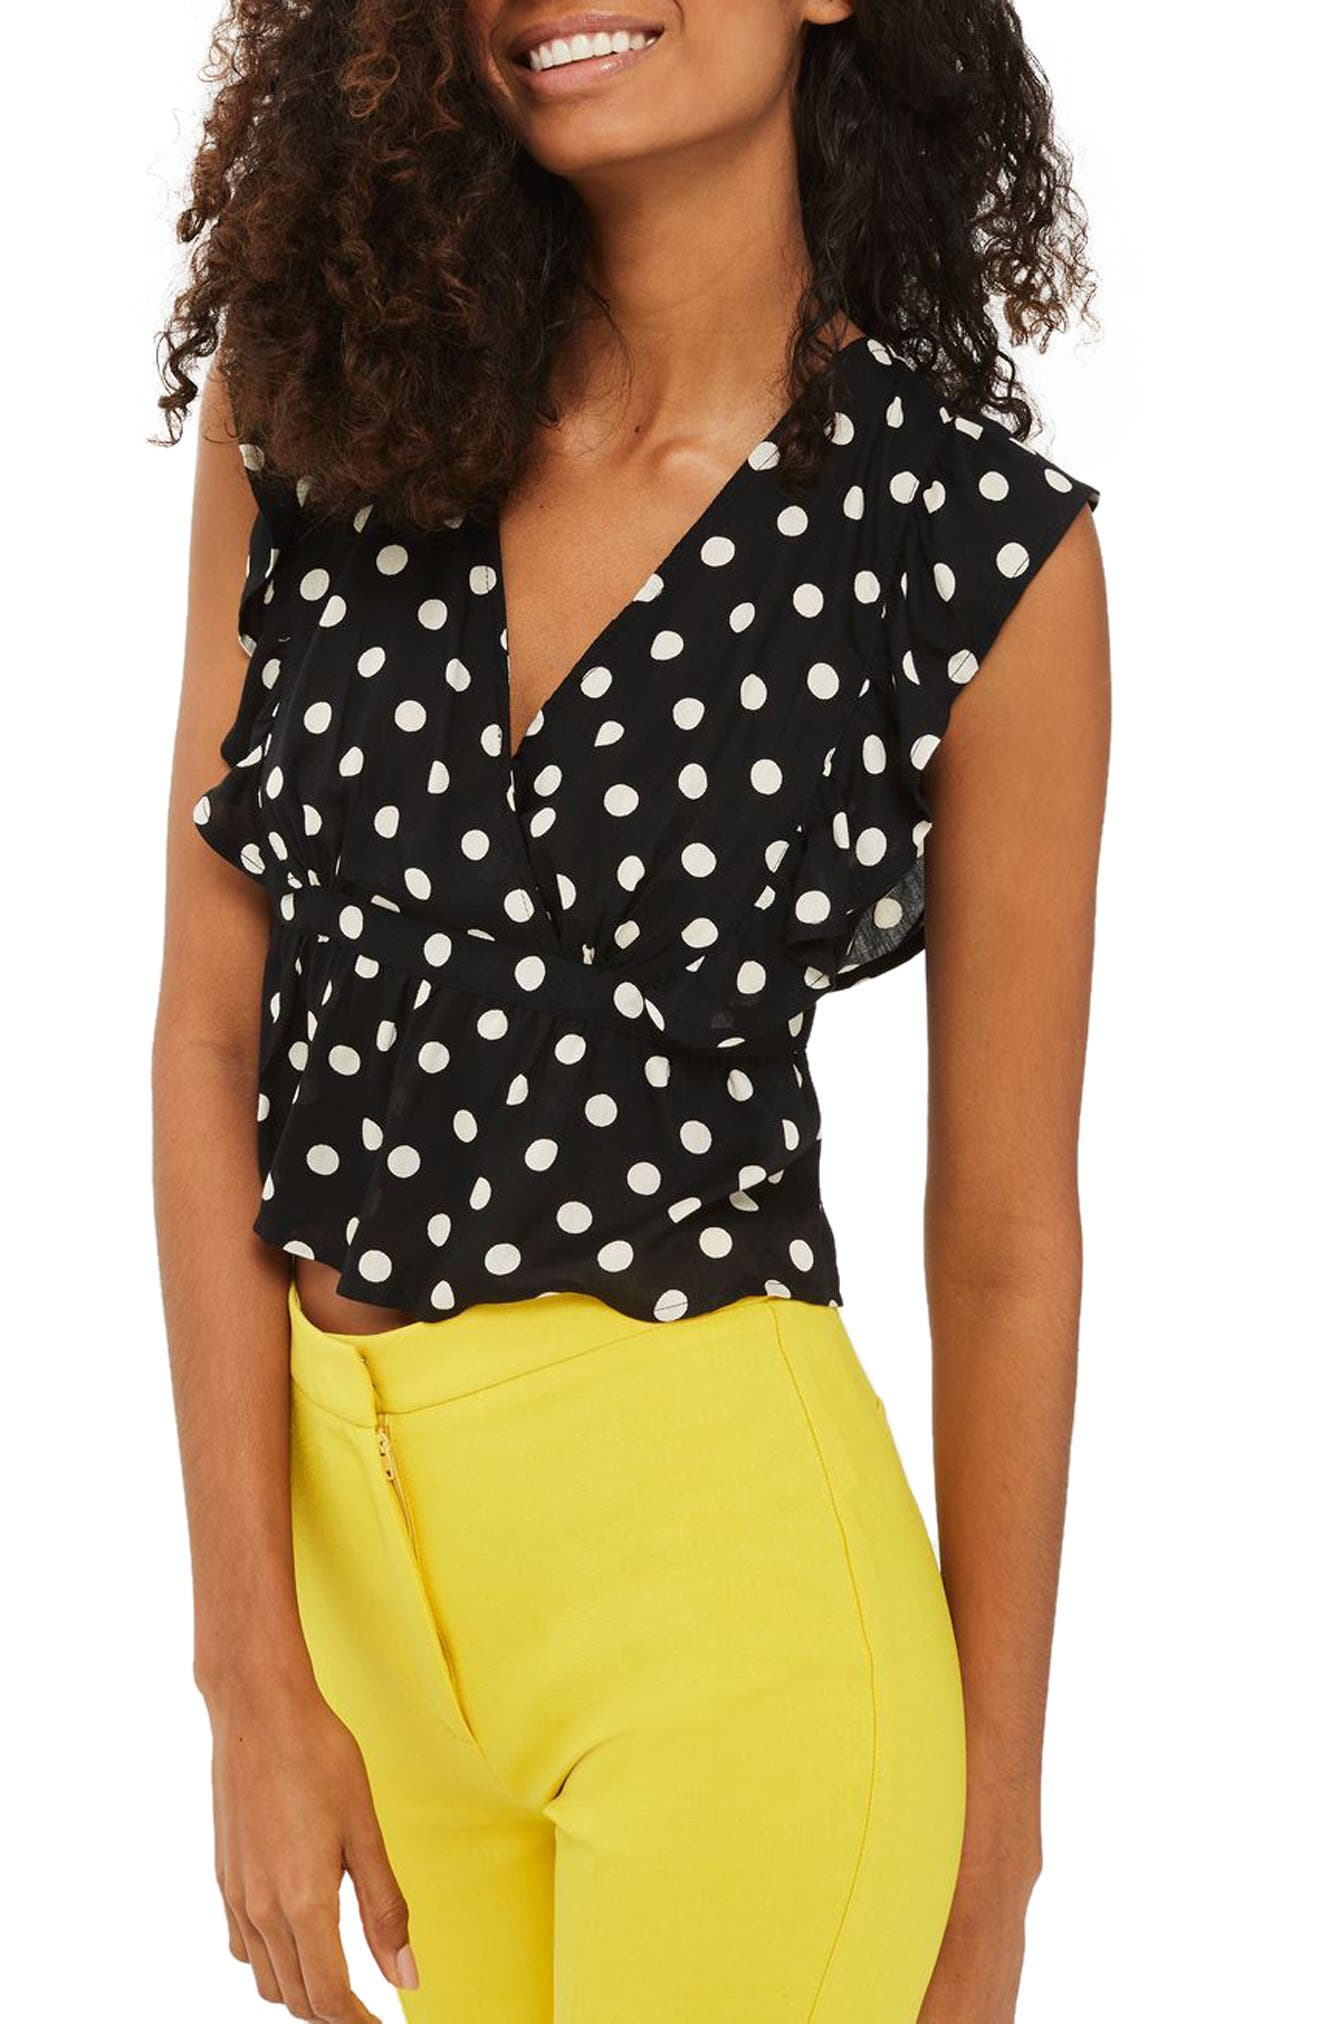 Topshop Polka Dot Sun Top